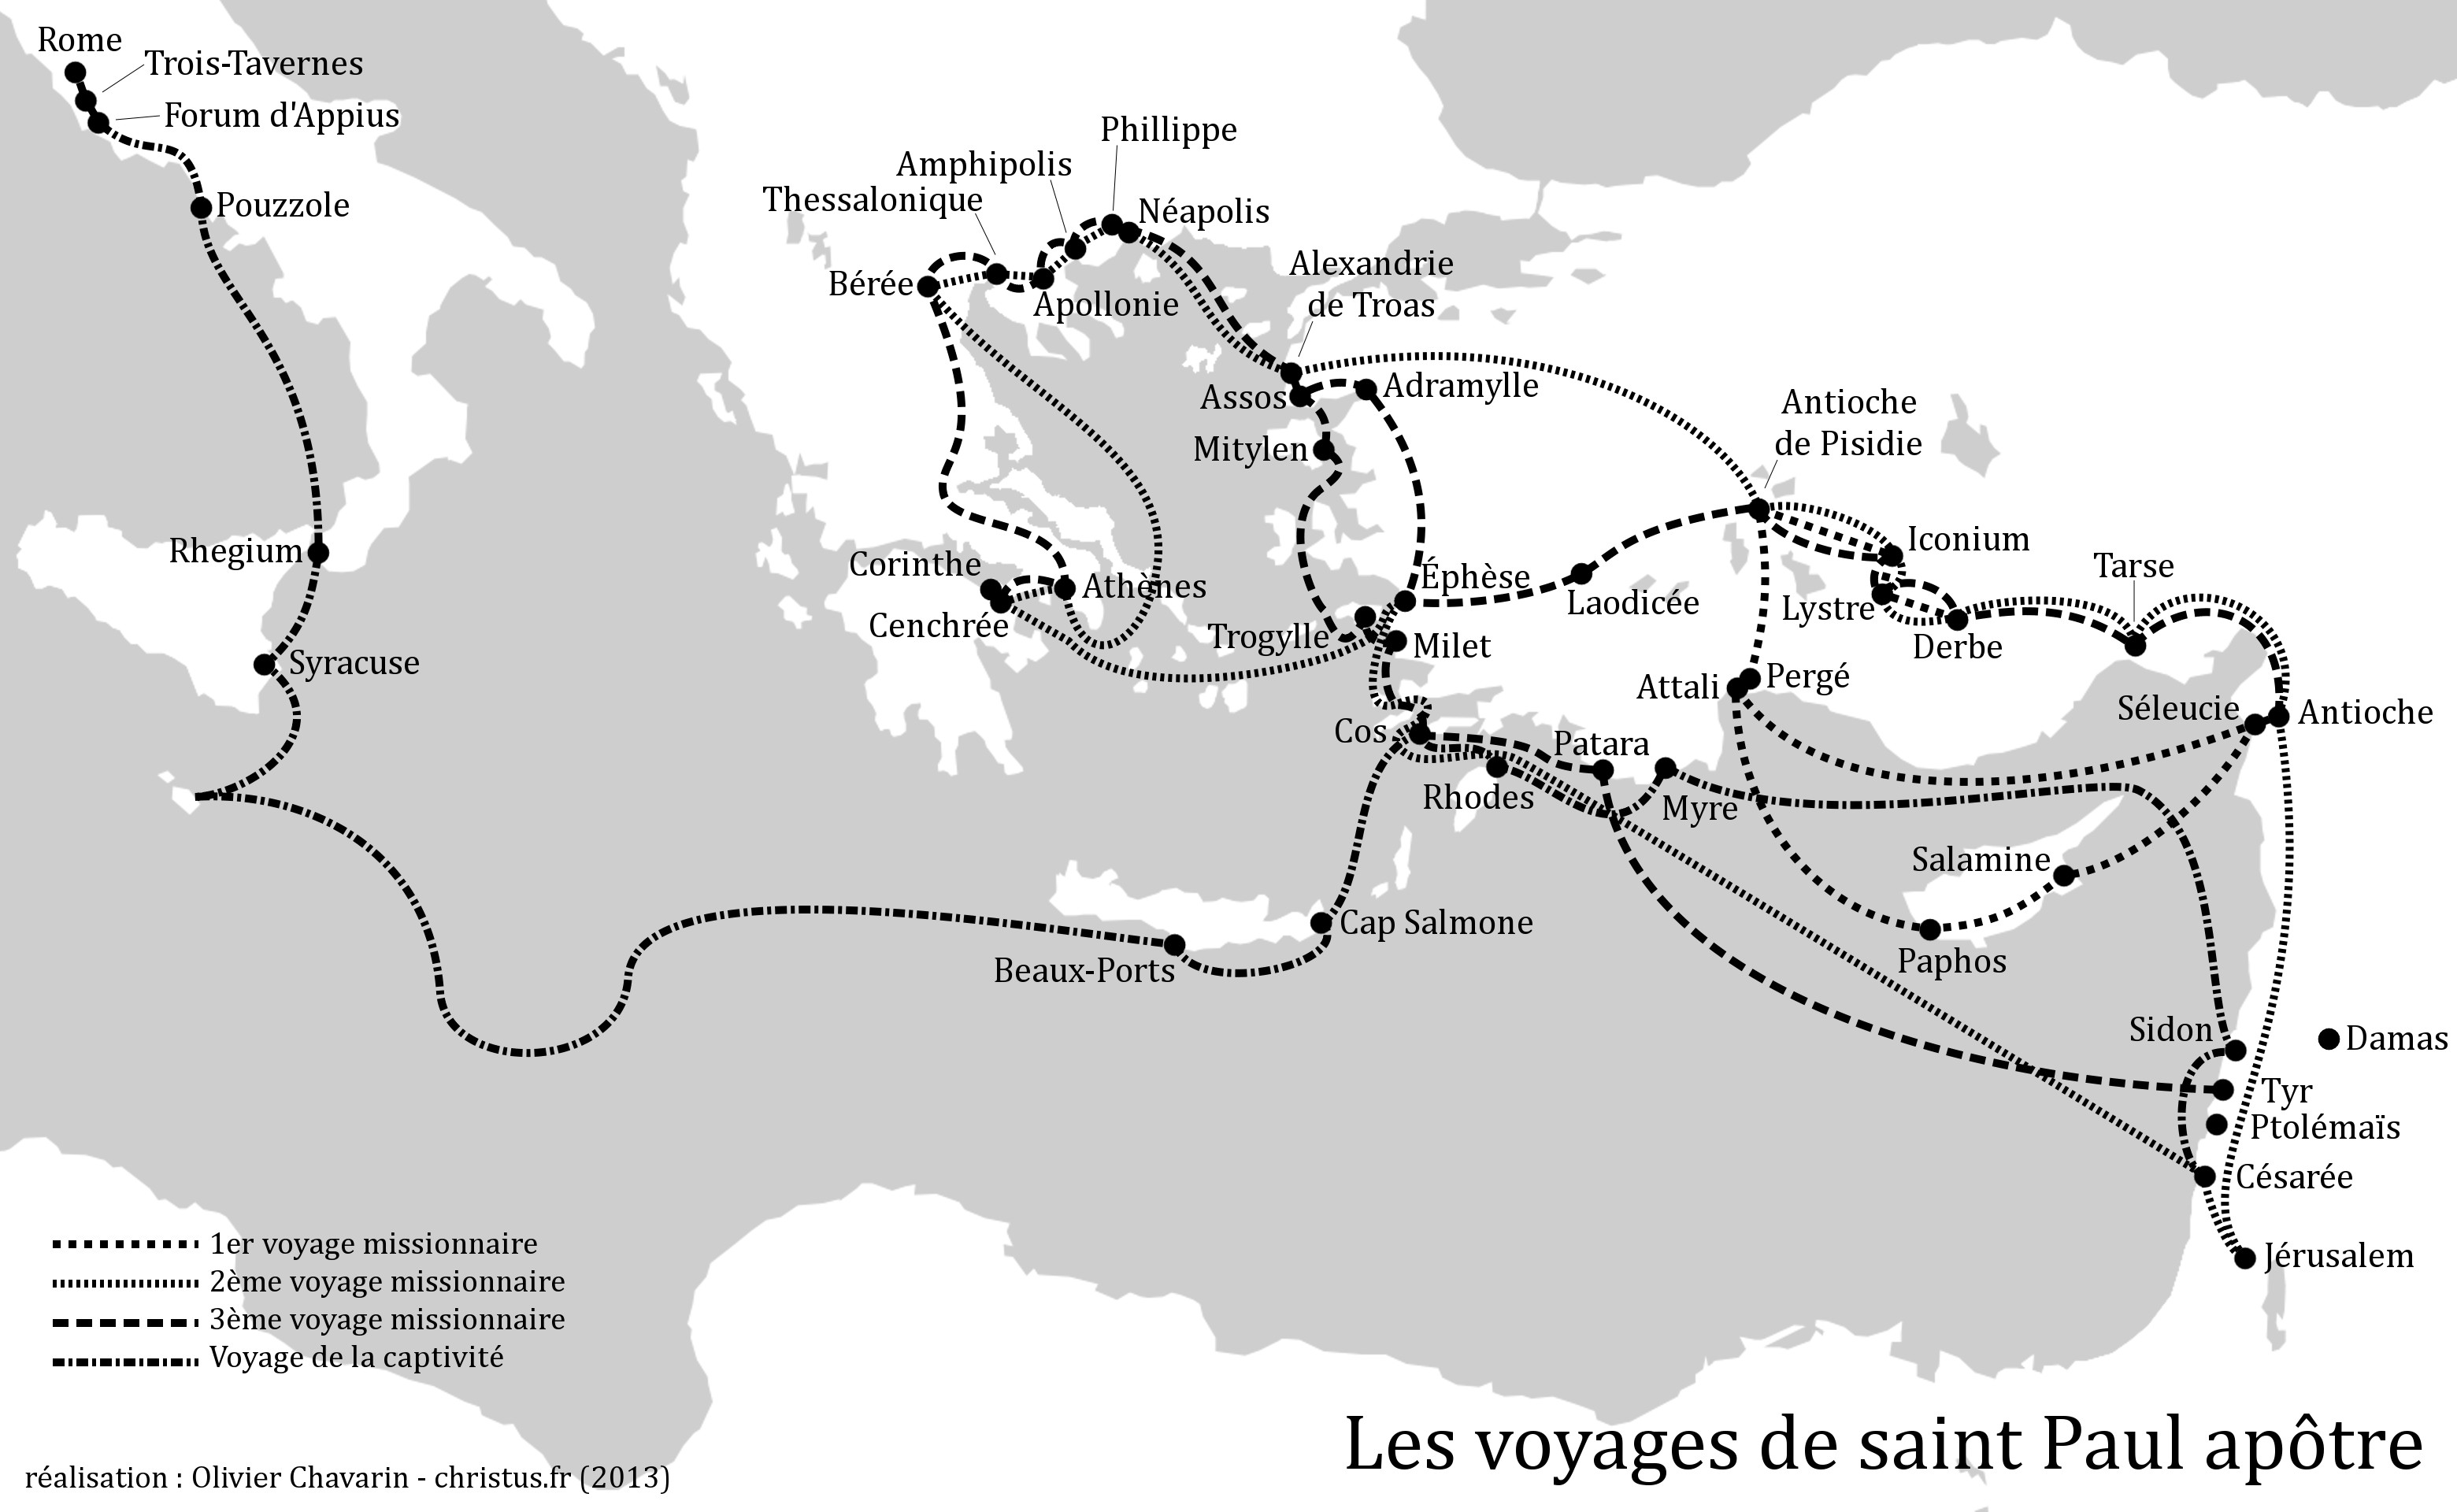 Carte des voyages de saint Paul. Version monochrome.